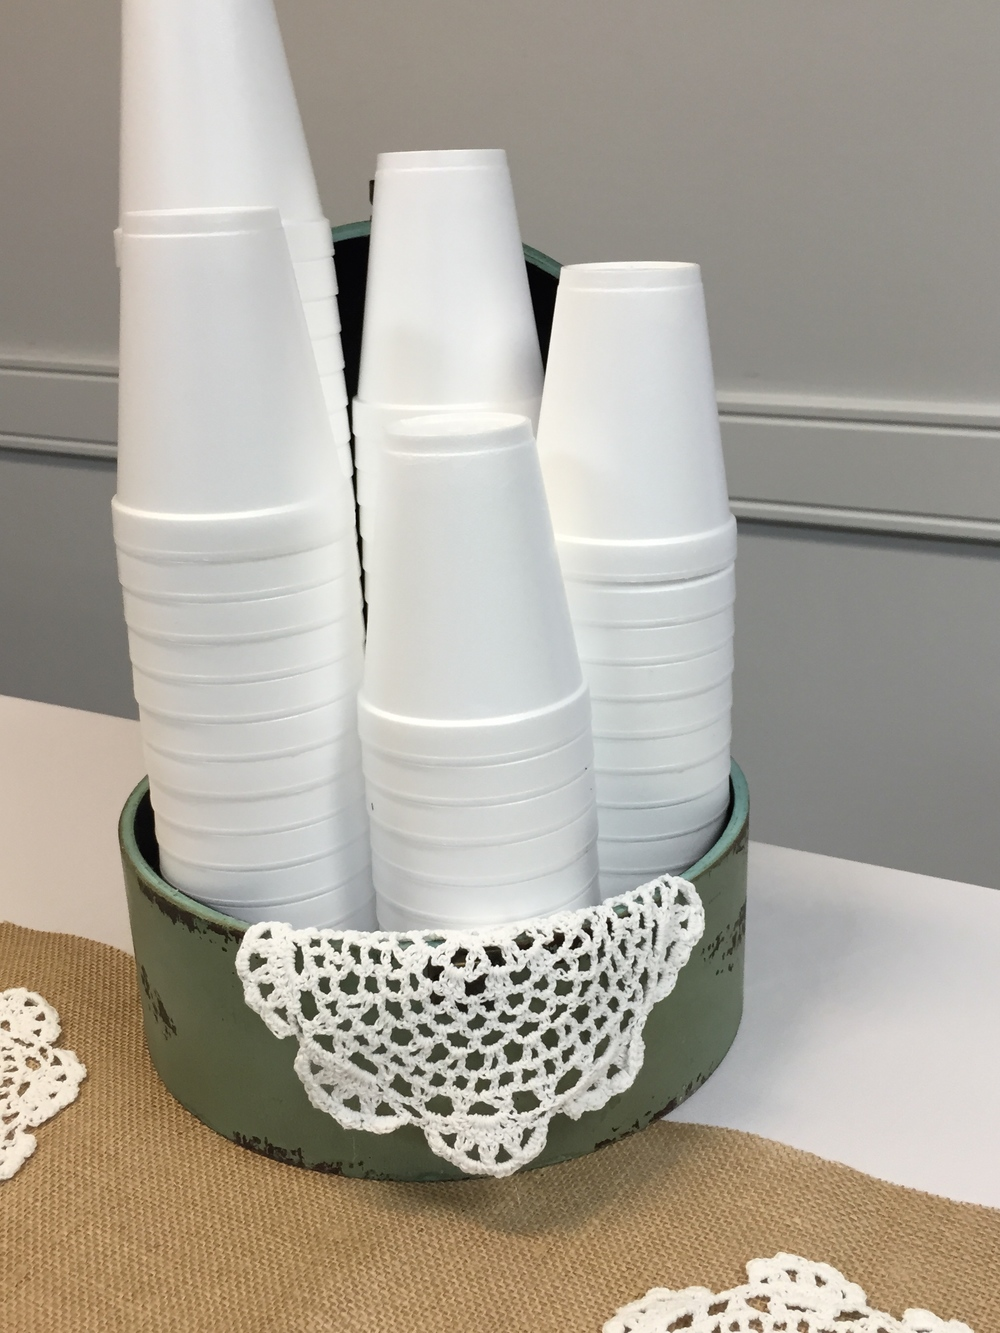 Dressing up Styrofoam cups 101.